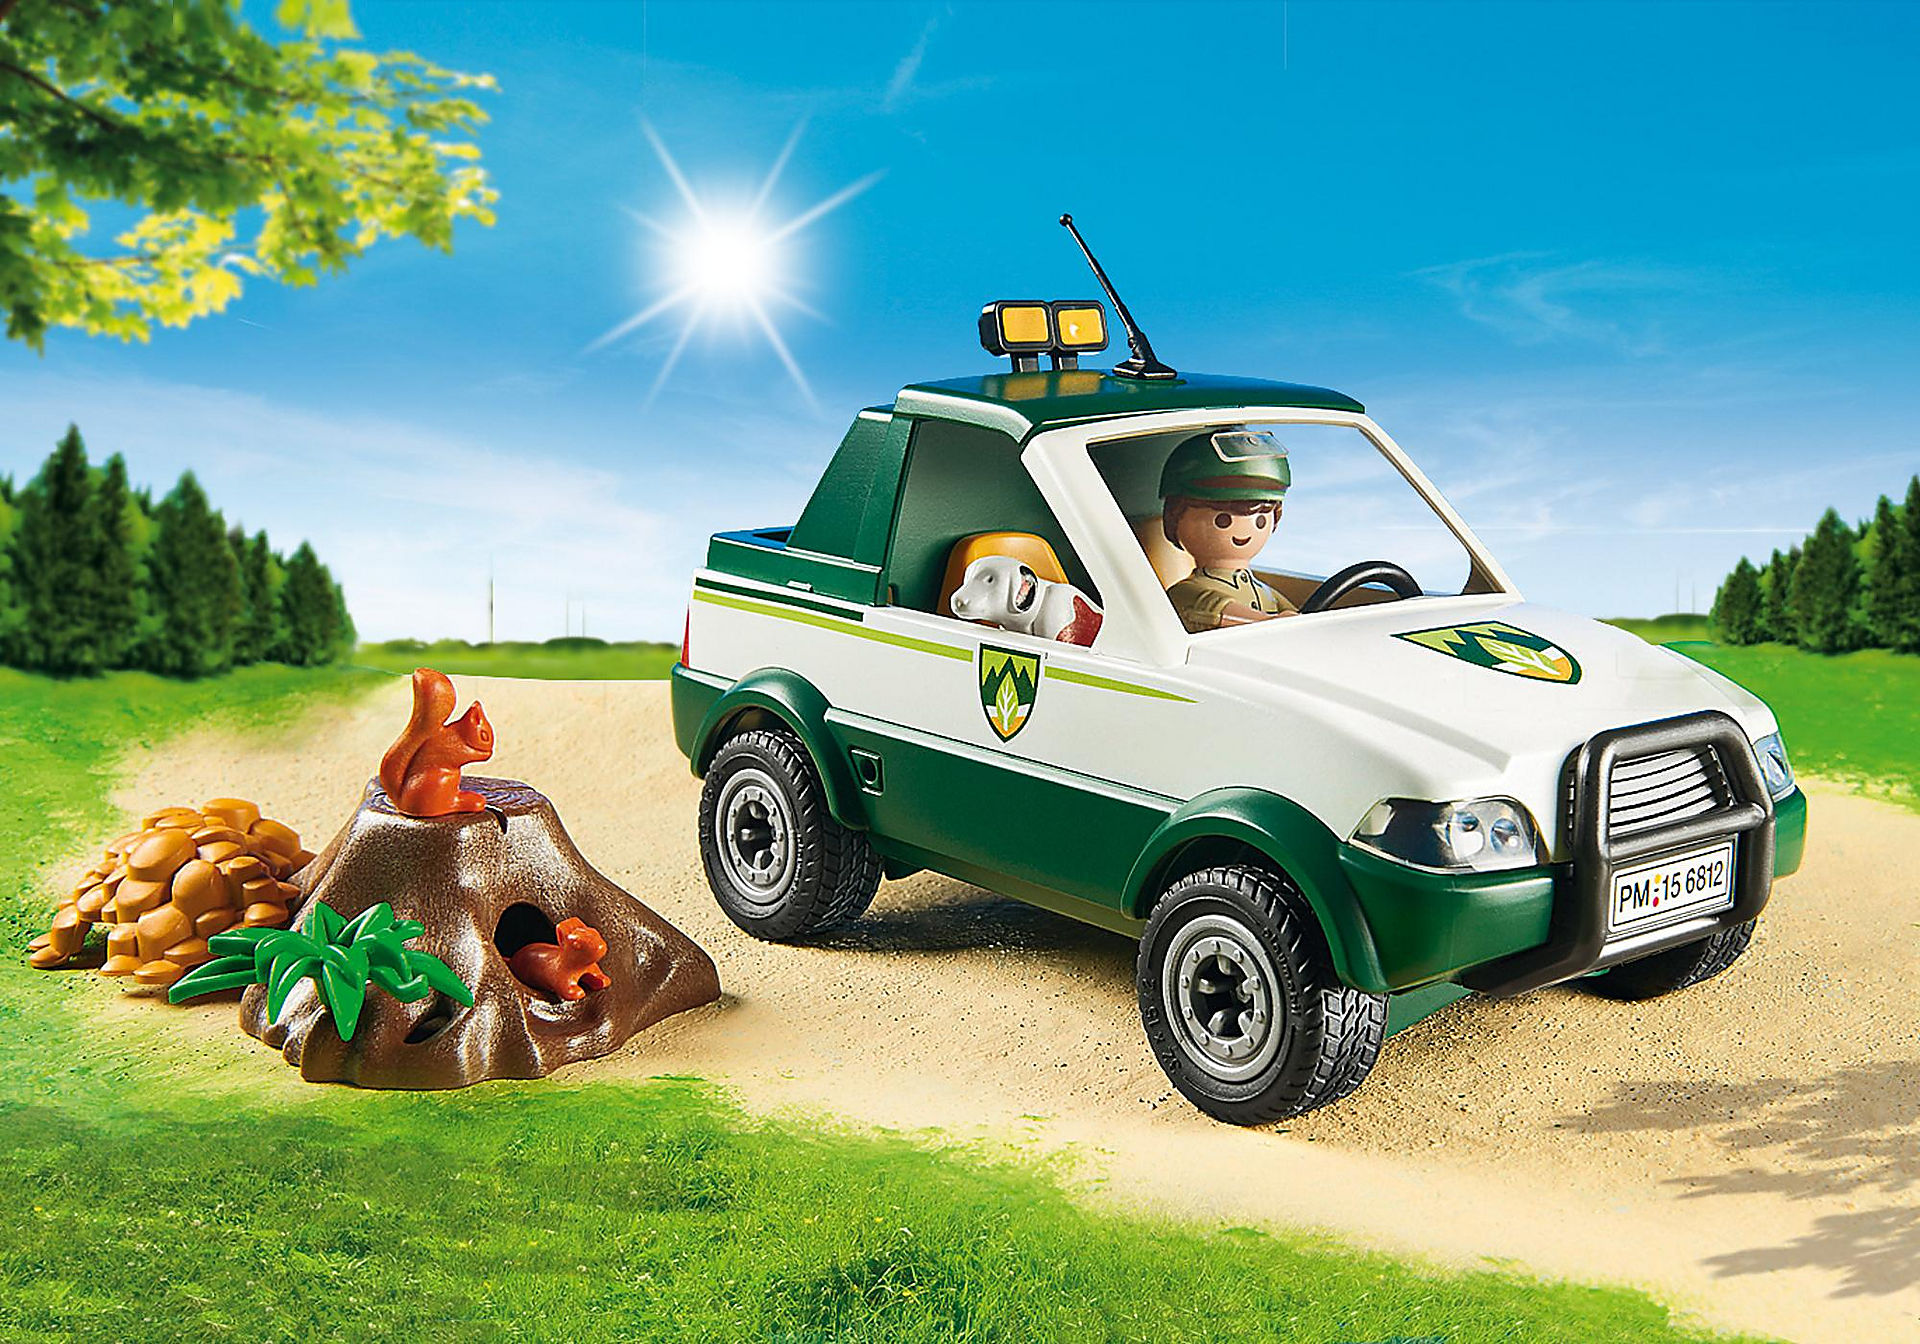 http://media.playmobil.com/i/playmobil/6812_product_extra2/Terreinwagen met boswachter